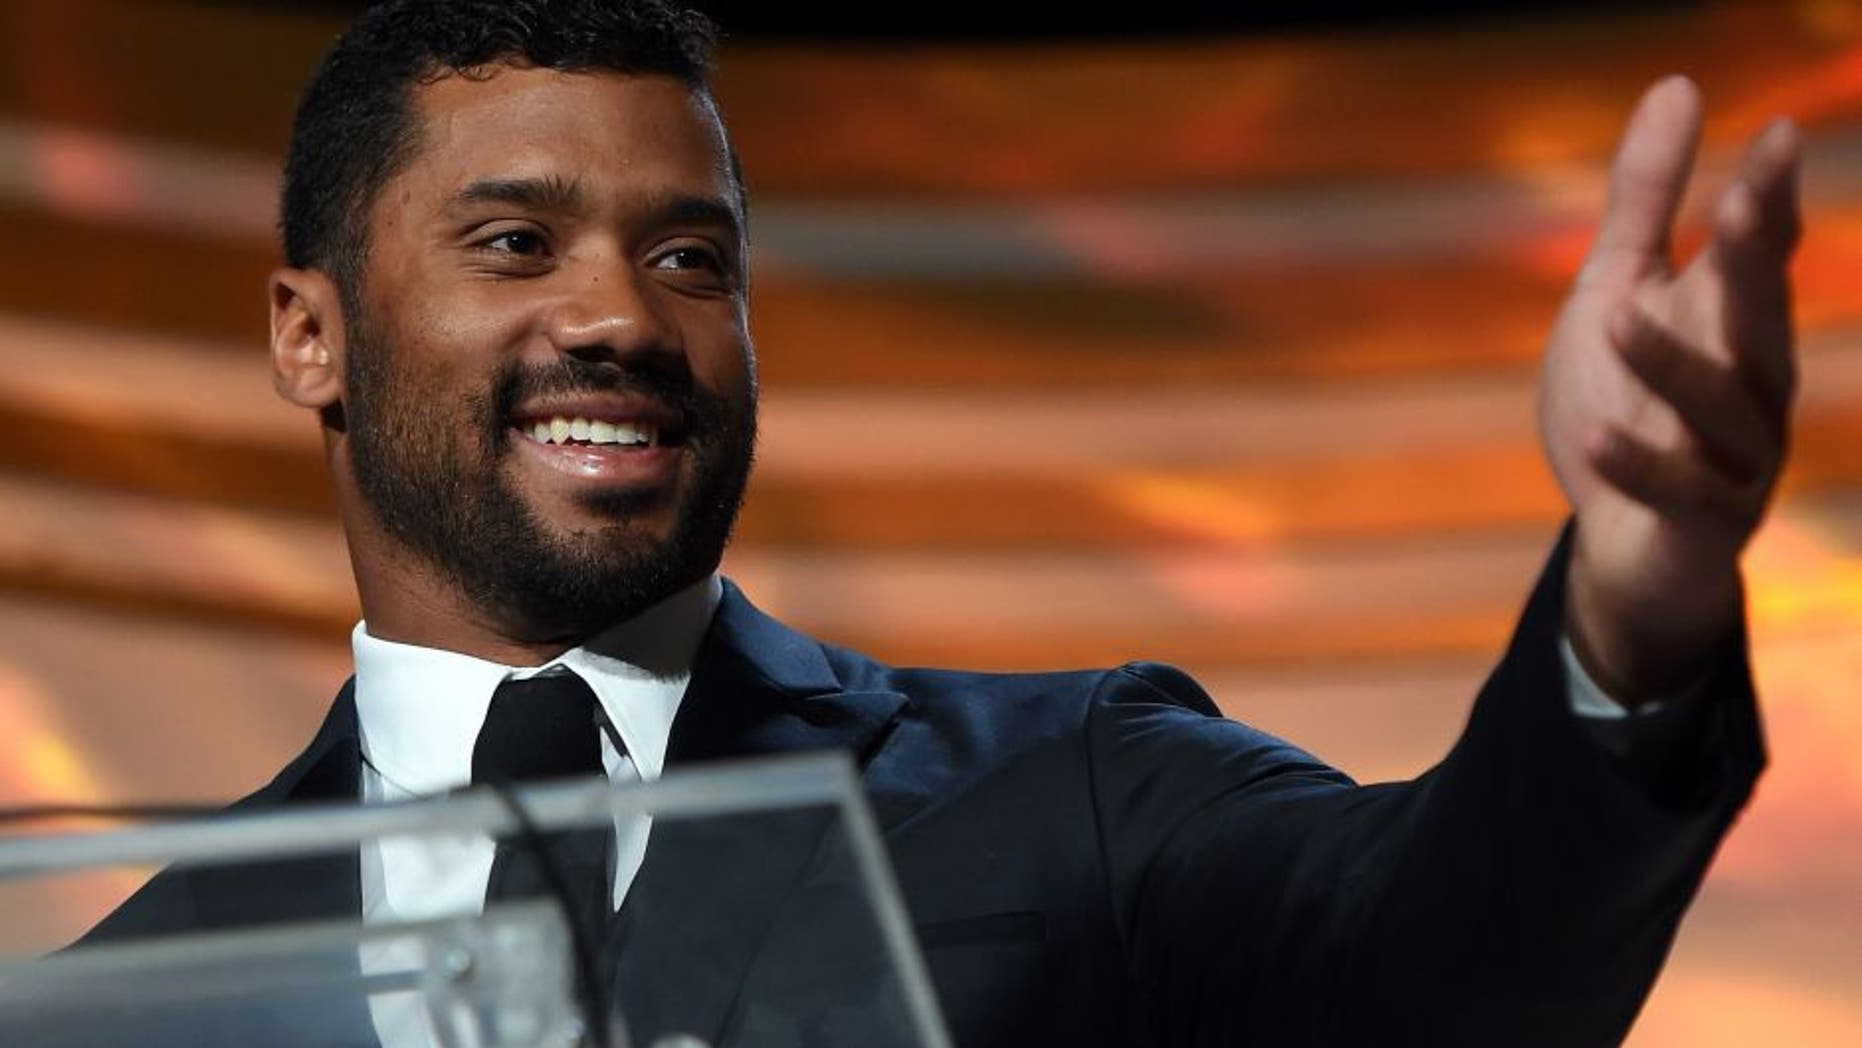 PHOENIX, AZ - MARCH 28: Seattle Seahawks quarterback Russell Wilson accepts an award during Muhammad Ali's Celebrity Fight Night XXI at the JW Marriott Phoenix Desert Ridge Resort & Spa on March 28, 2015 in Phoenix, Arizona. (Photo by Ethan Miller/Getty Images for Celebrity Fight Night)